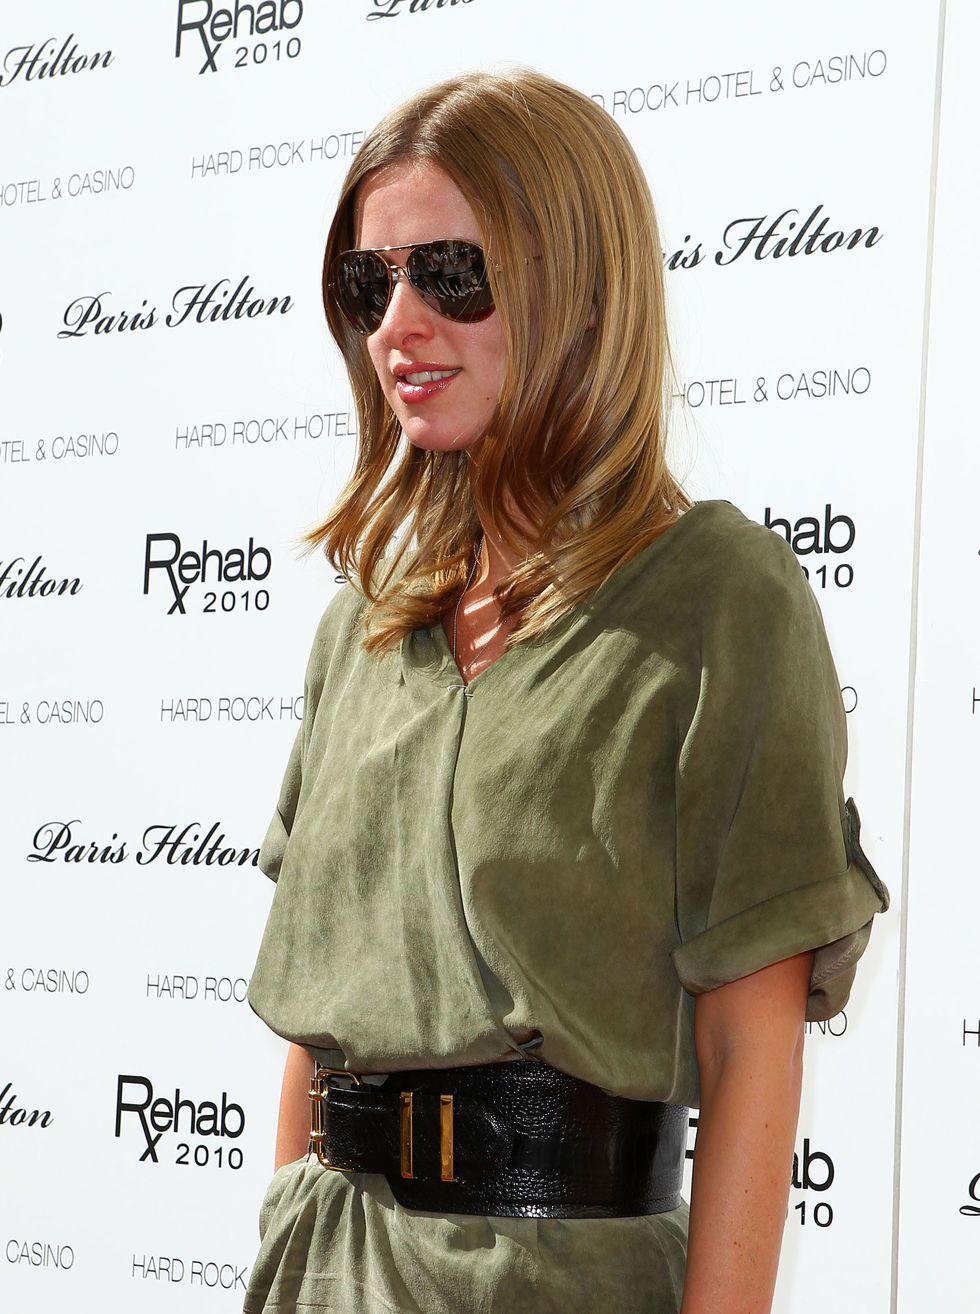 Nicky Hilton 2010 : nicky-hilton-leggy-candids-at-the-ultimate-daytime-pool-party-in-las-vegas-10